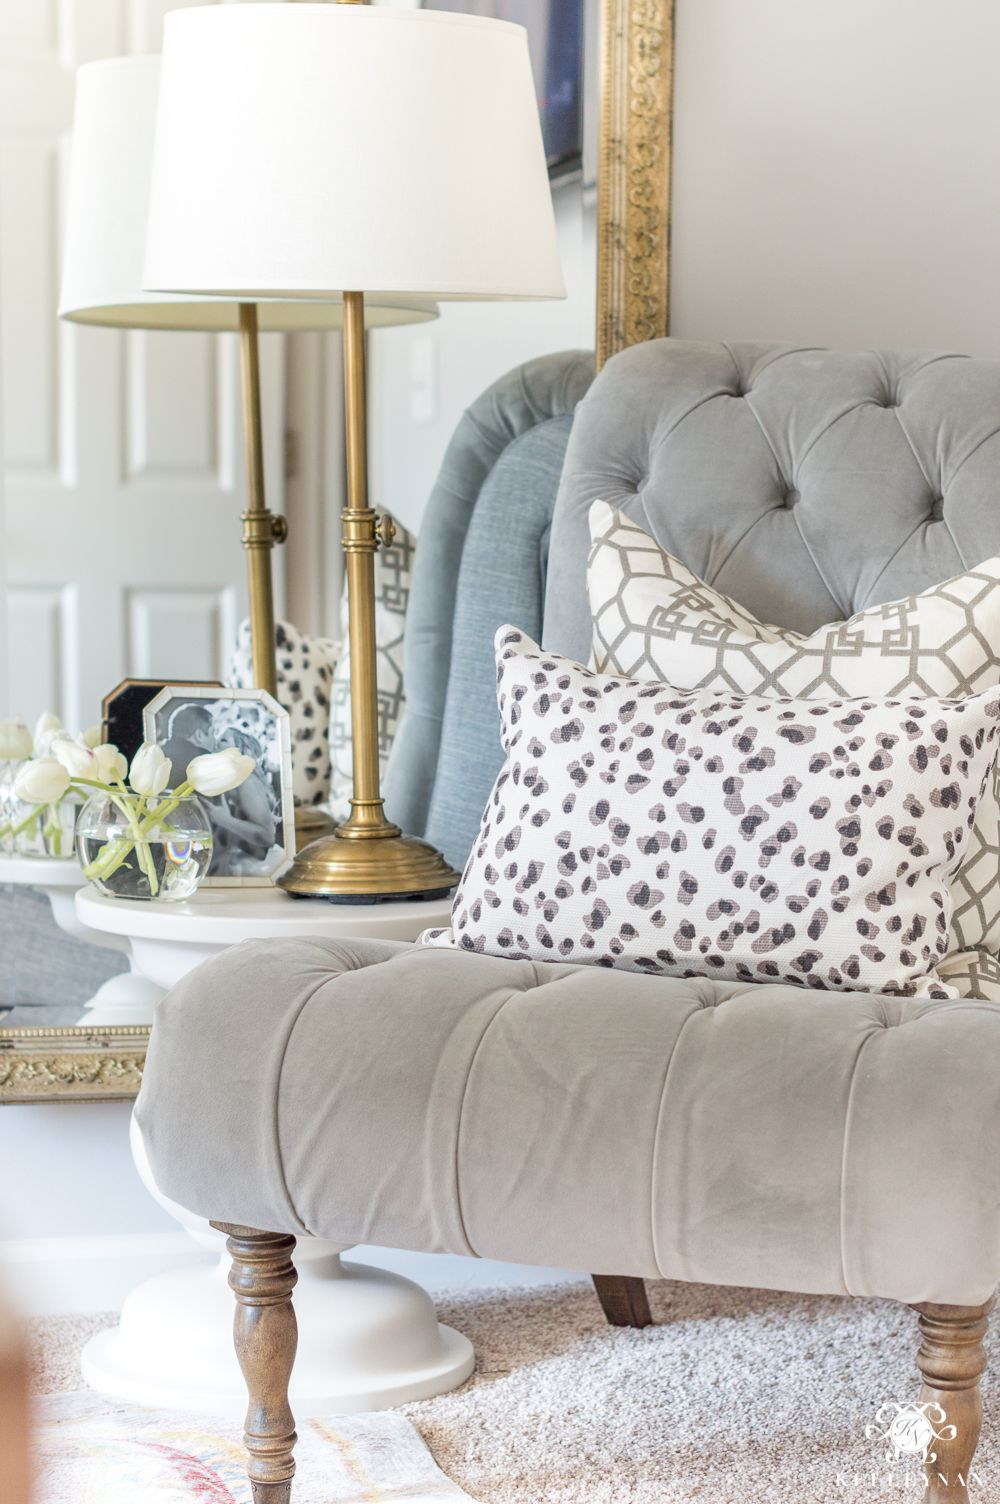 Tufted Gray Slipper Chair With Layered Patterned Pillows